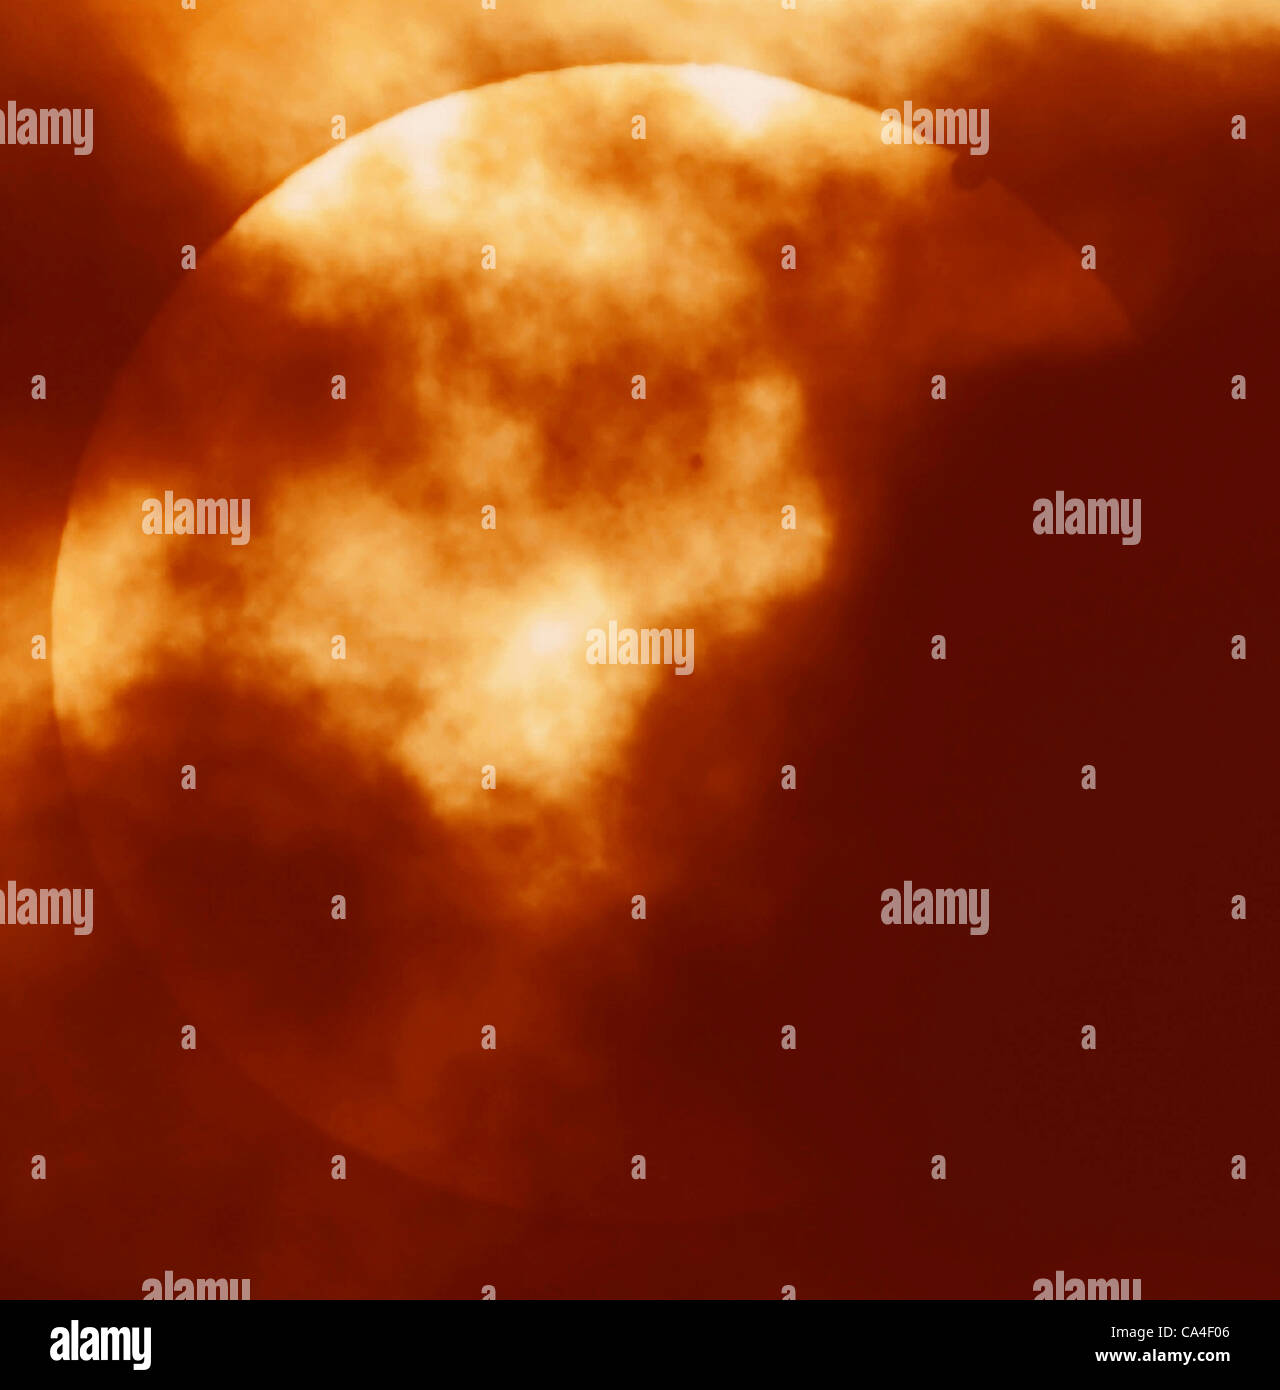 a-rare-venus-transit-of-the-sun-on-the-6